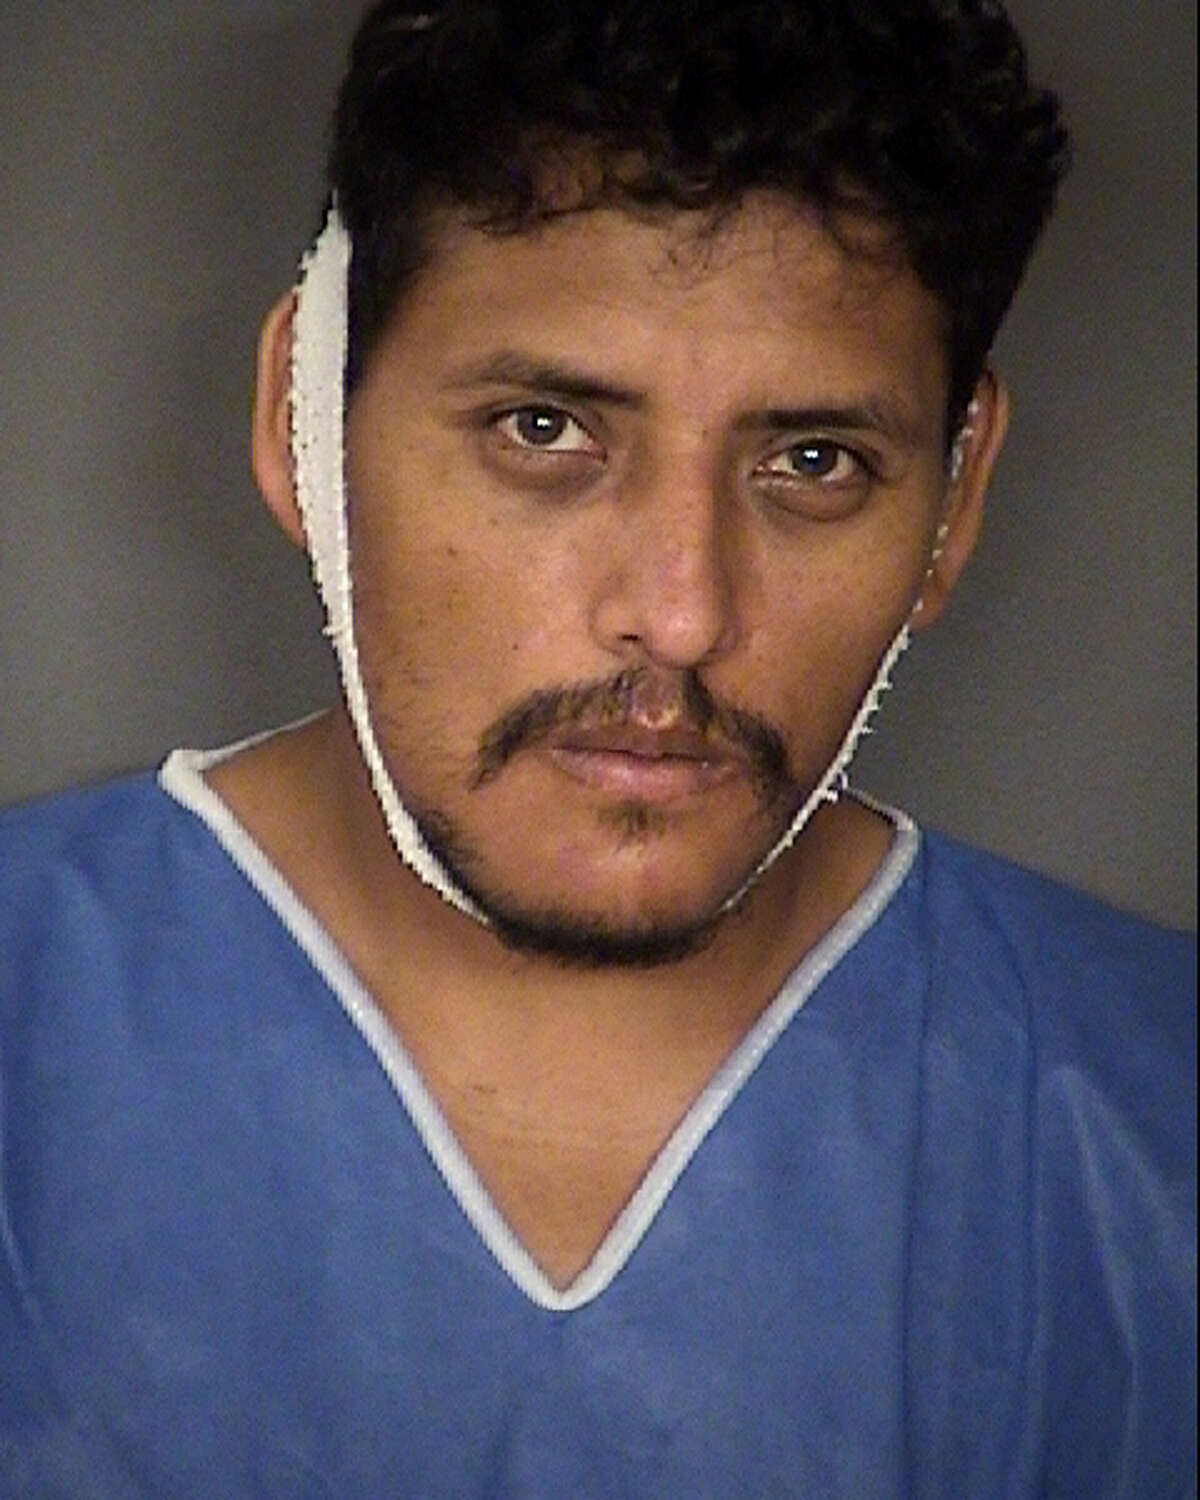 Armando Garcia-Ramires, a 36-year-old unauthorized immigrant from Mexico, currently faces two charges of capital murder in the death of his stepdaughter, 15-year-old Jennifer Delgado, whom he impregnated with a second child about a month after ICE agents released him from custody for the second time.